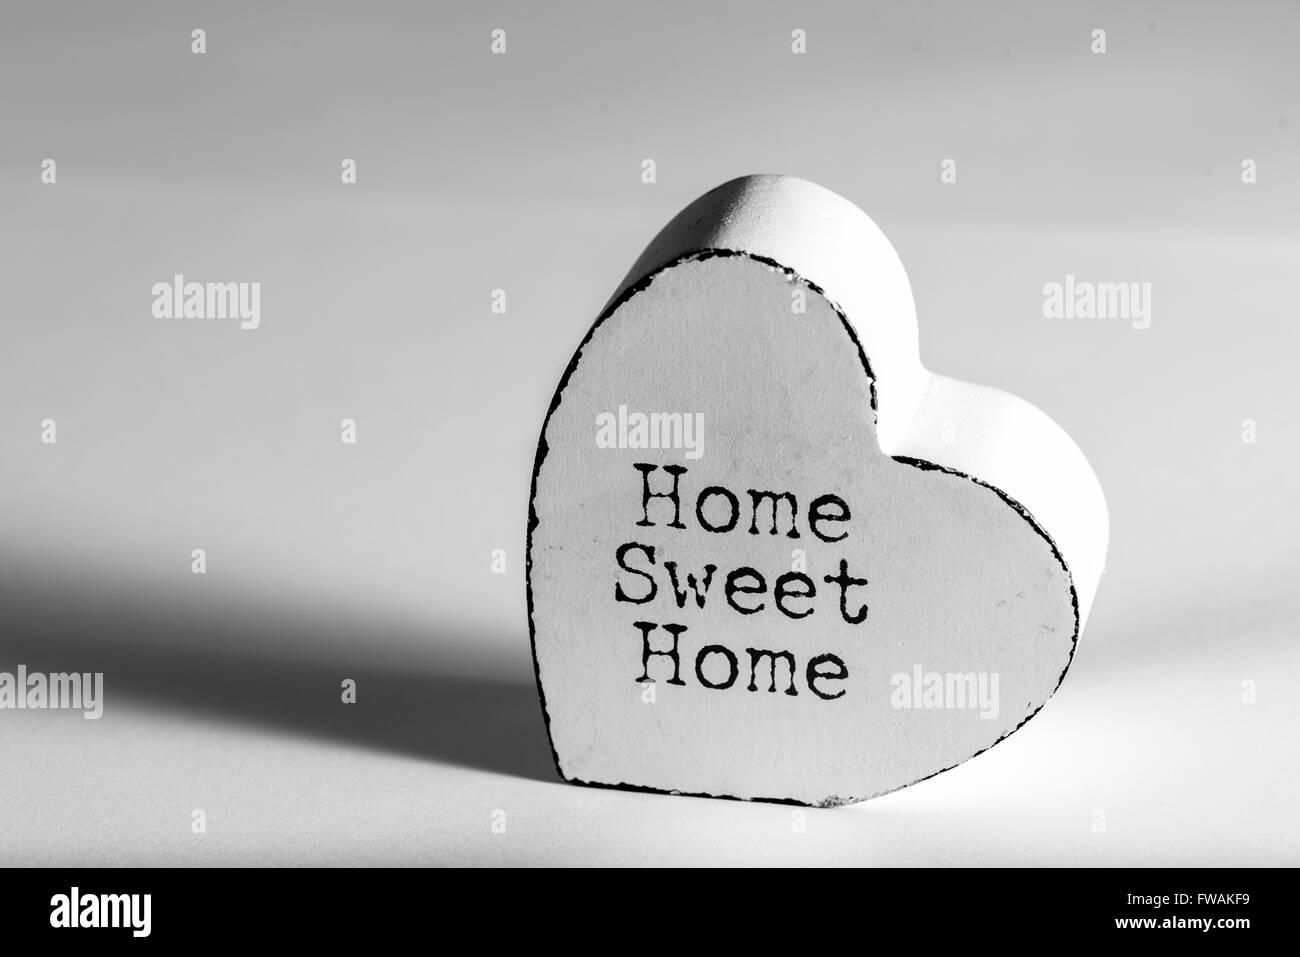 heart shaped object with the words home sweet home painted on it - Stock Image